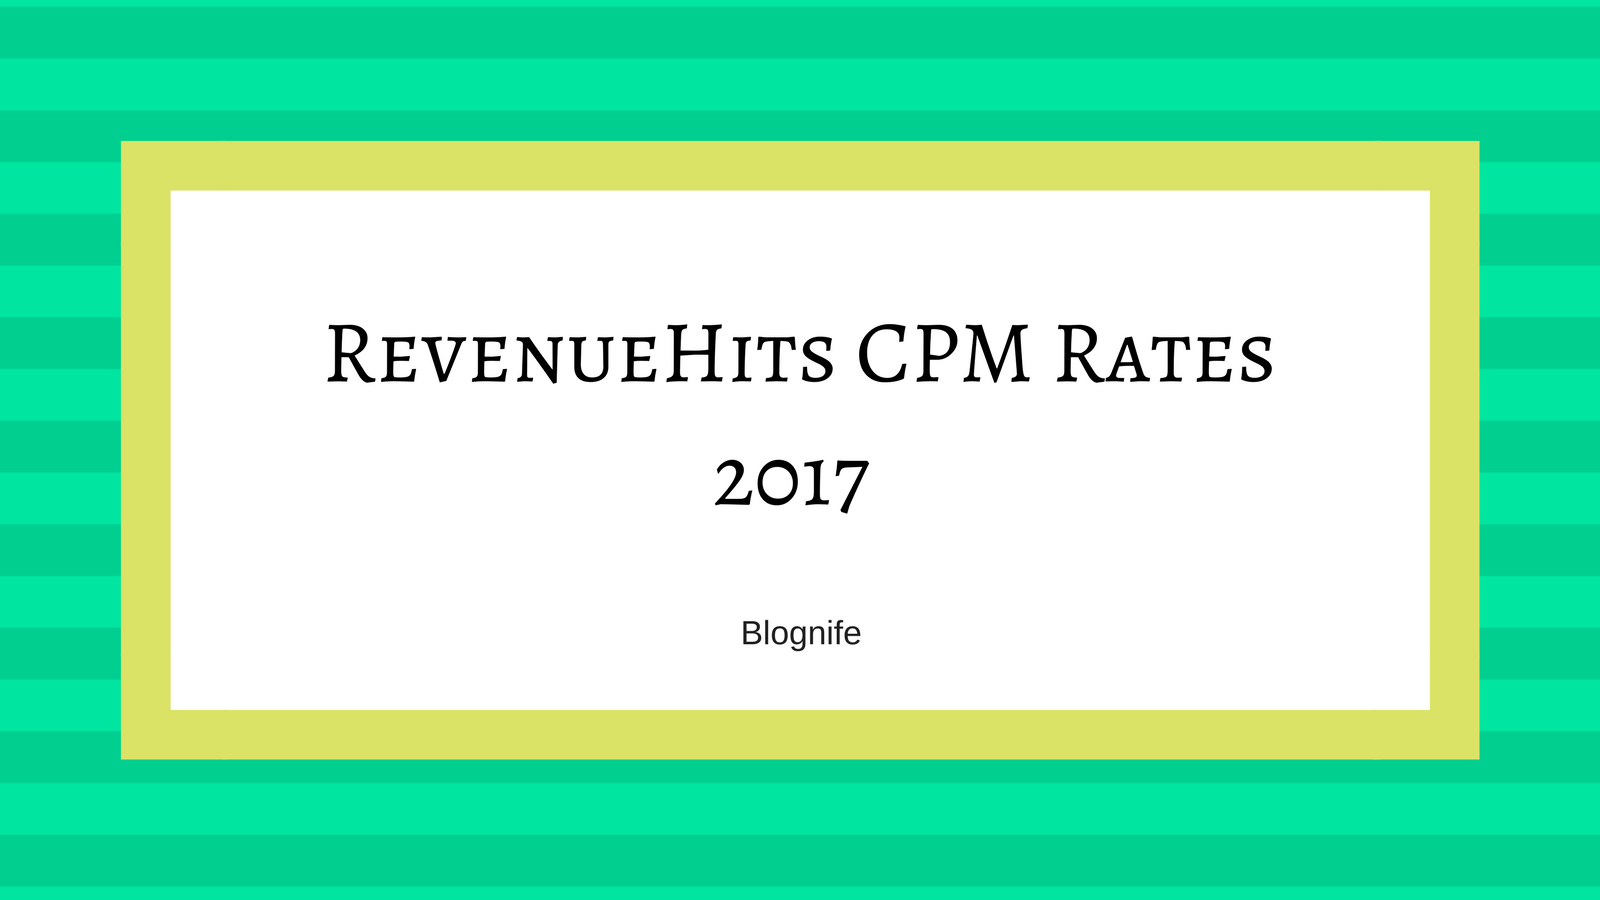 RevenueHits CPM Rates 2020